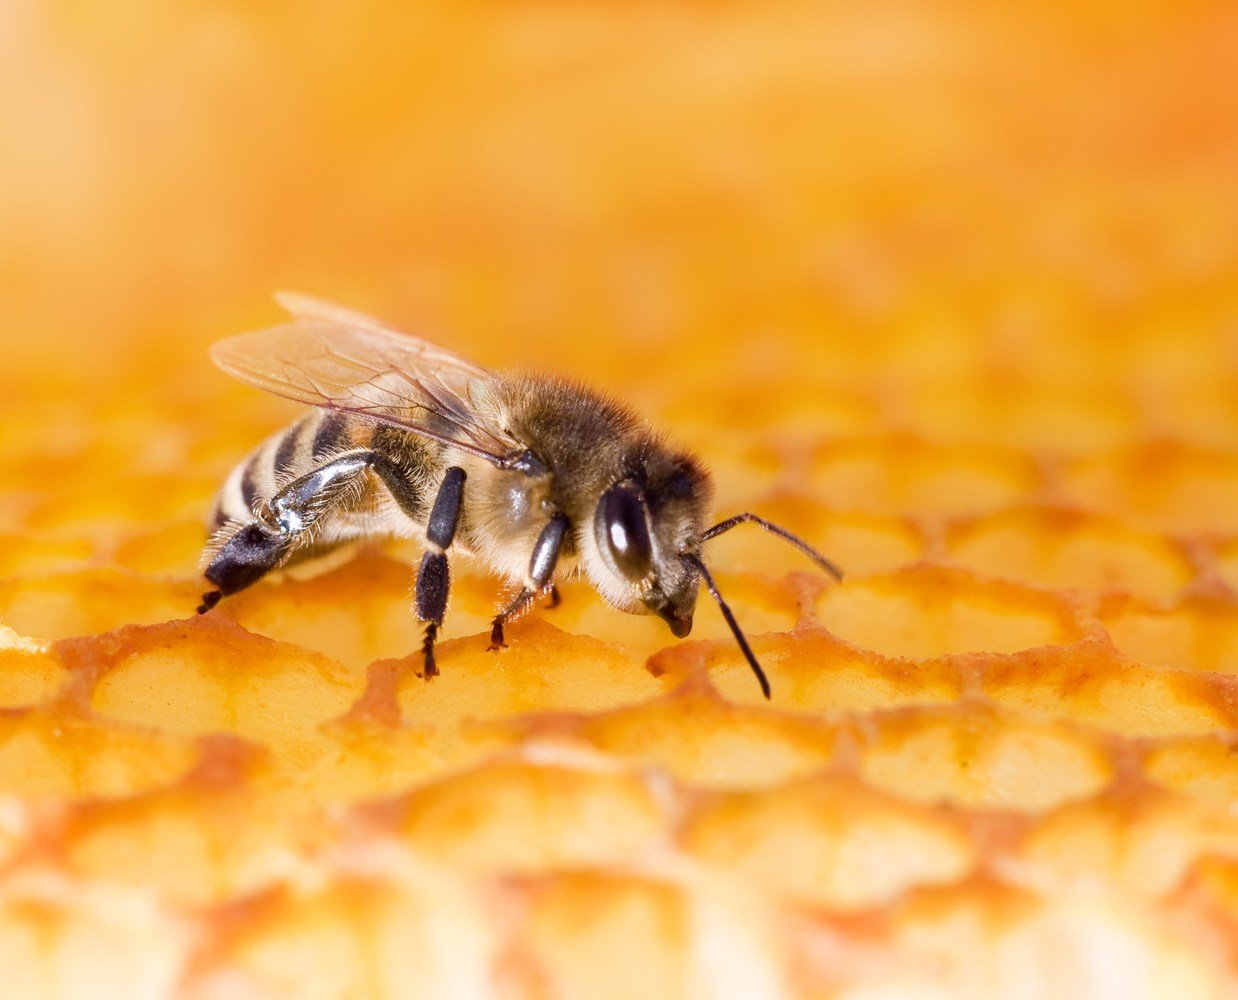 Shortage of anti-venom for those who are allergic to bee stings